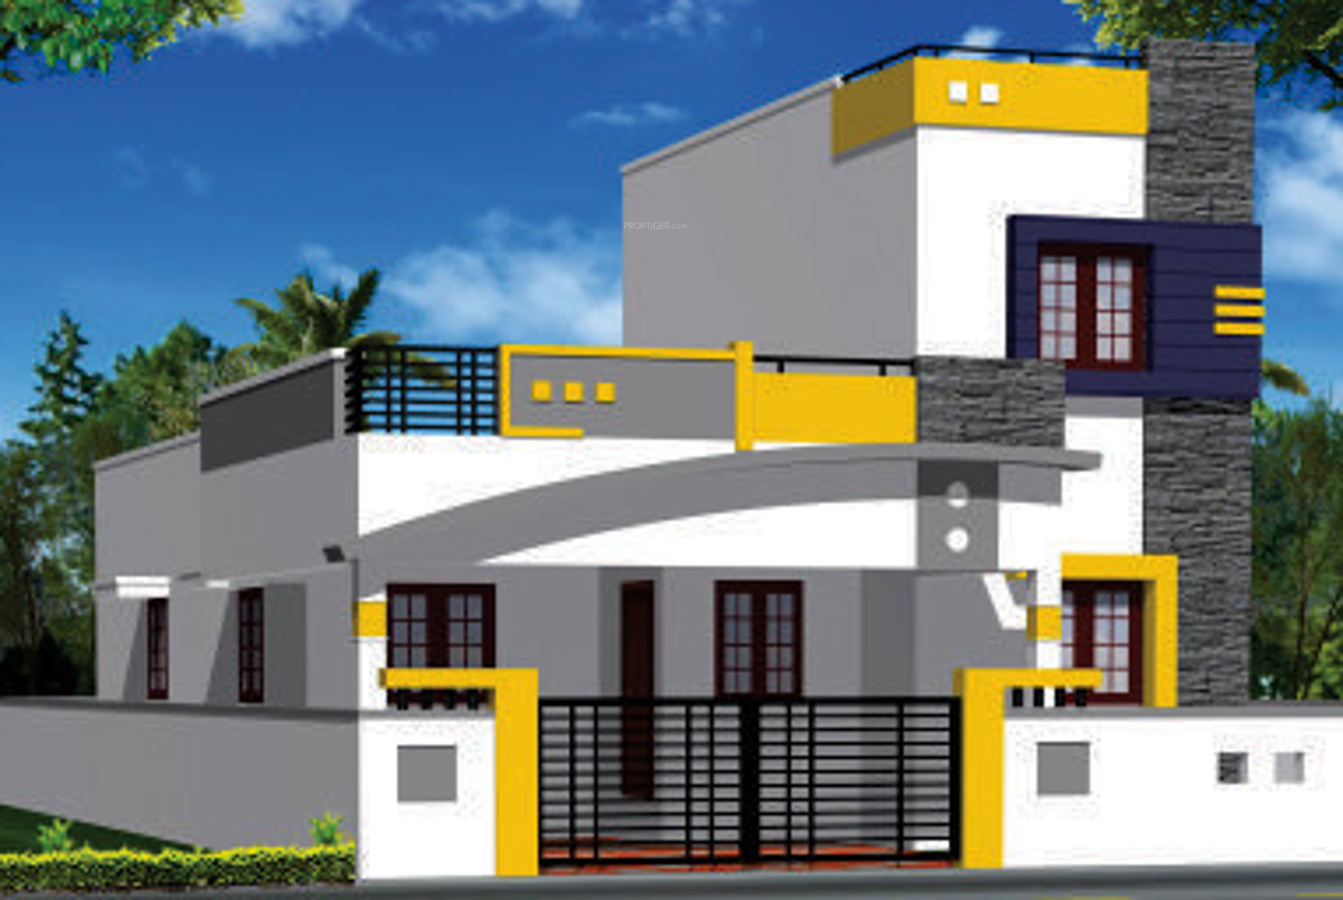 Front Elevation Designs Independent Houses : The gallery for gt front elevations of independent houses